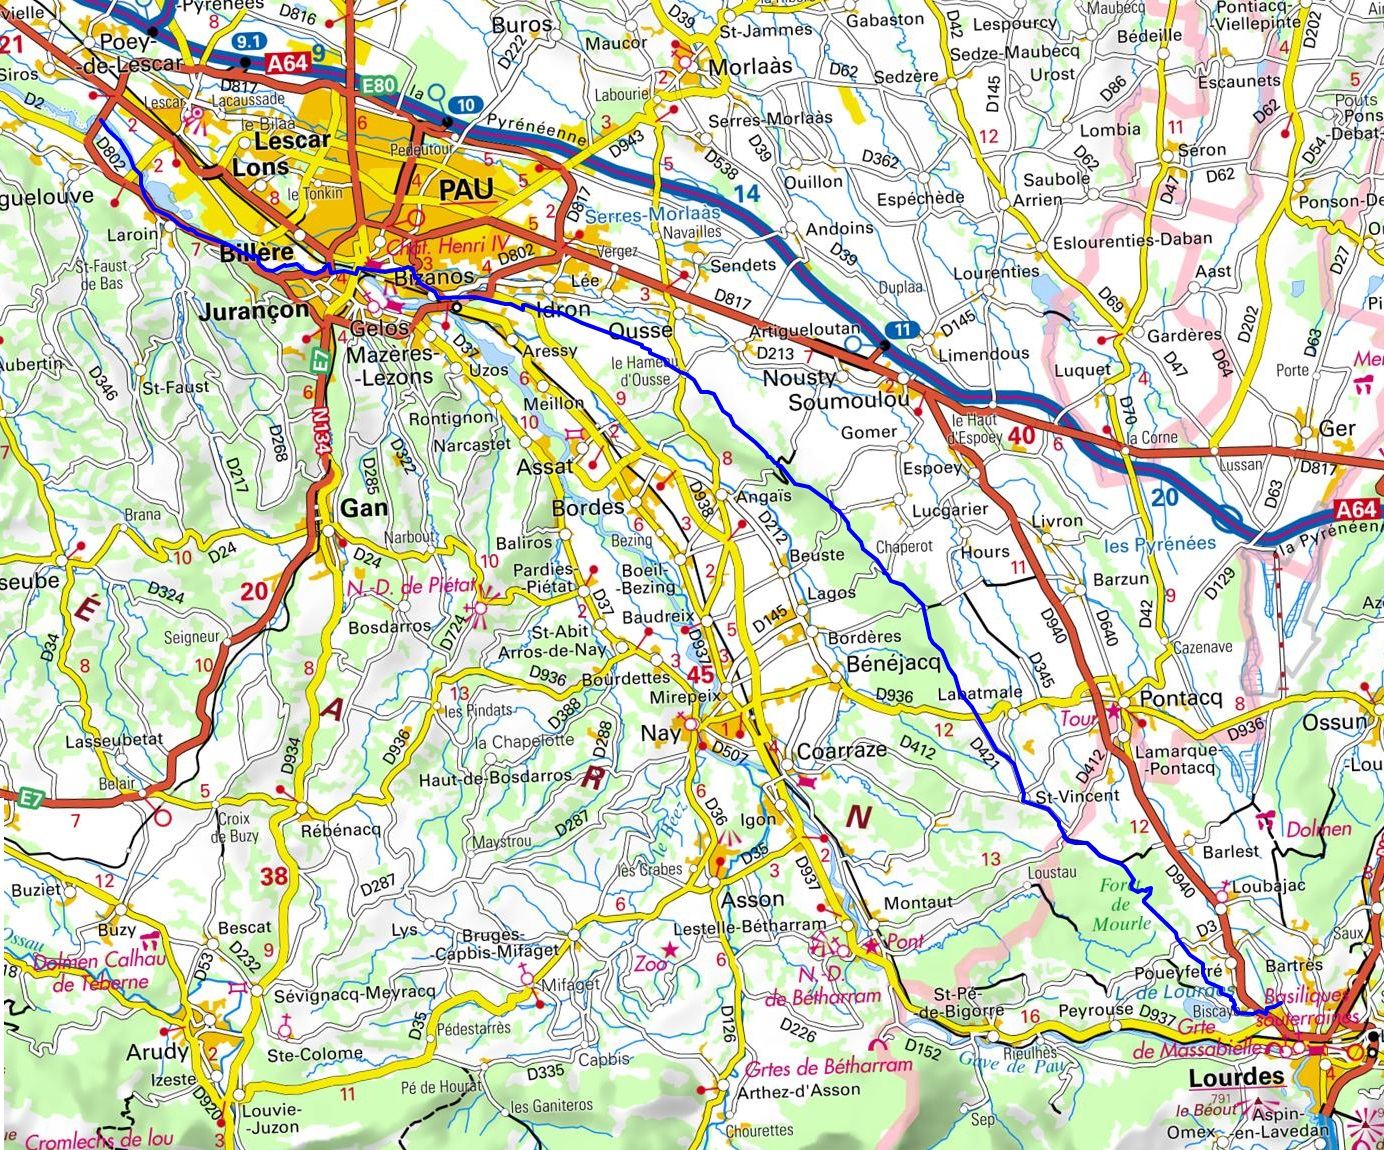 GR782 Henri IV Way. Hiking from Lourdes (Hautes-Pyrenees) to Artiguelouve (Pyrenees-Atlantiques) 1